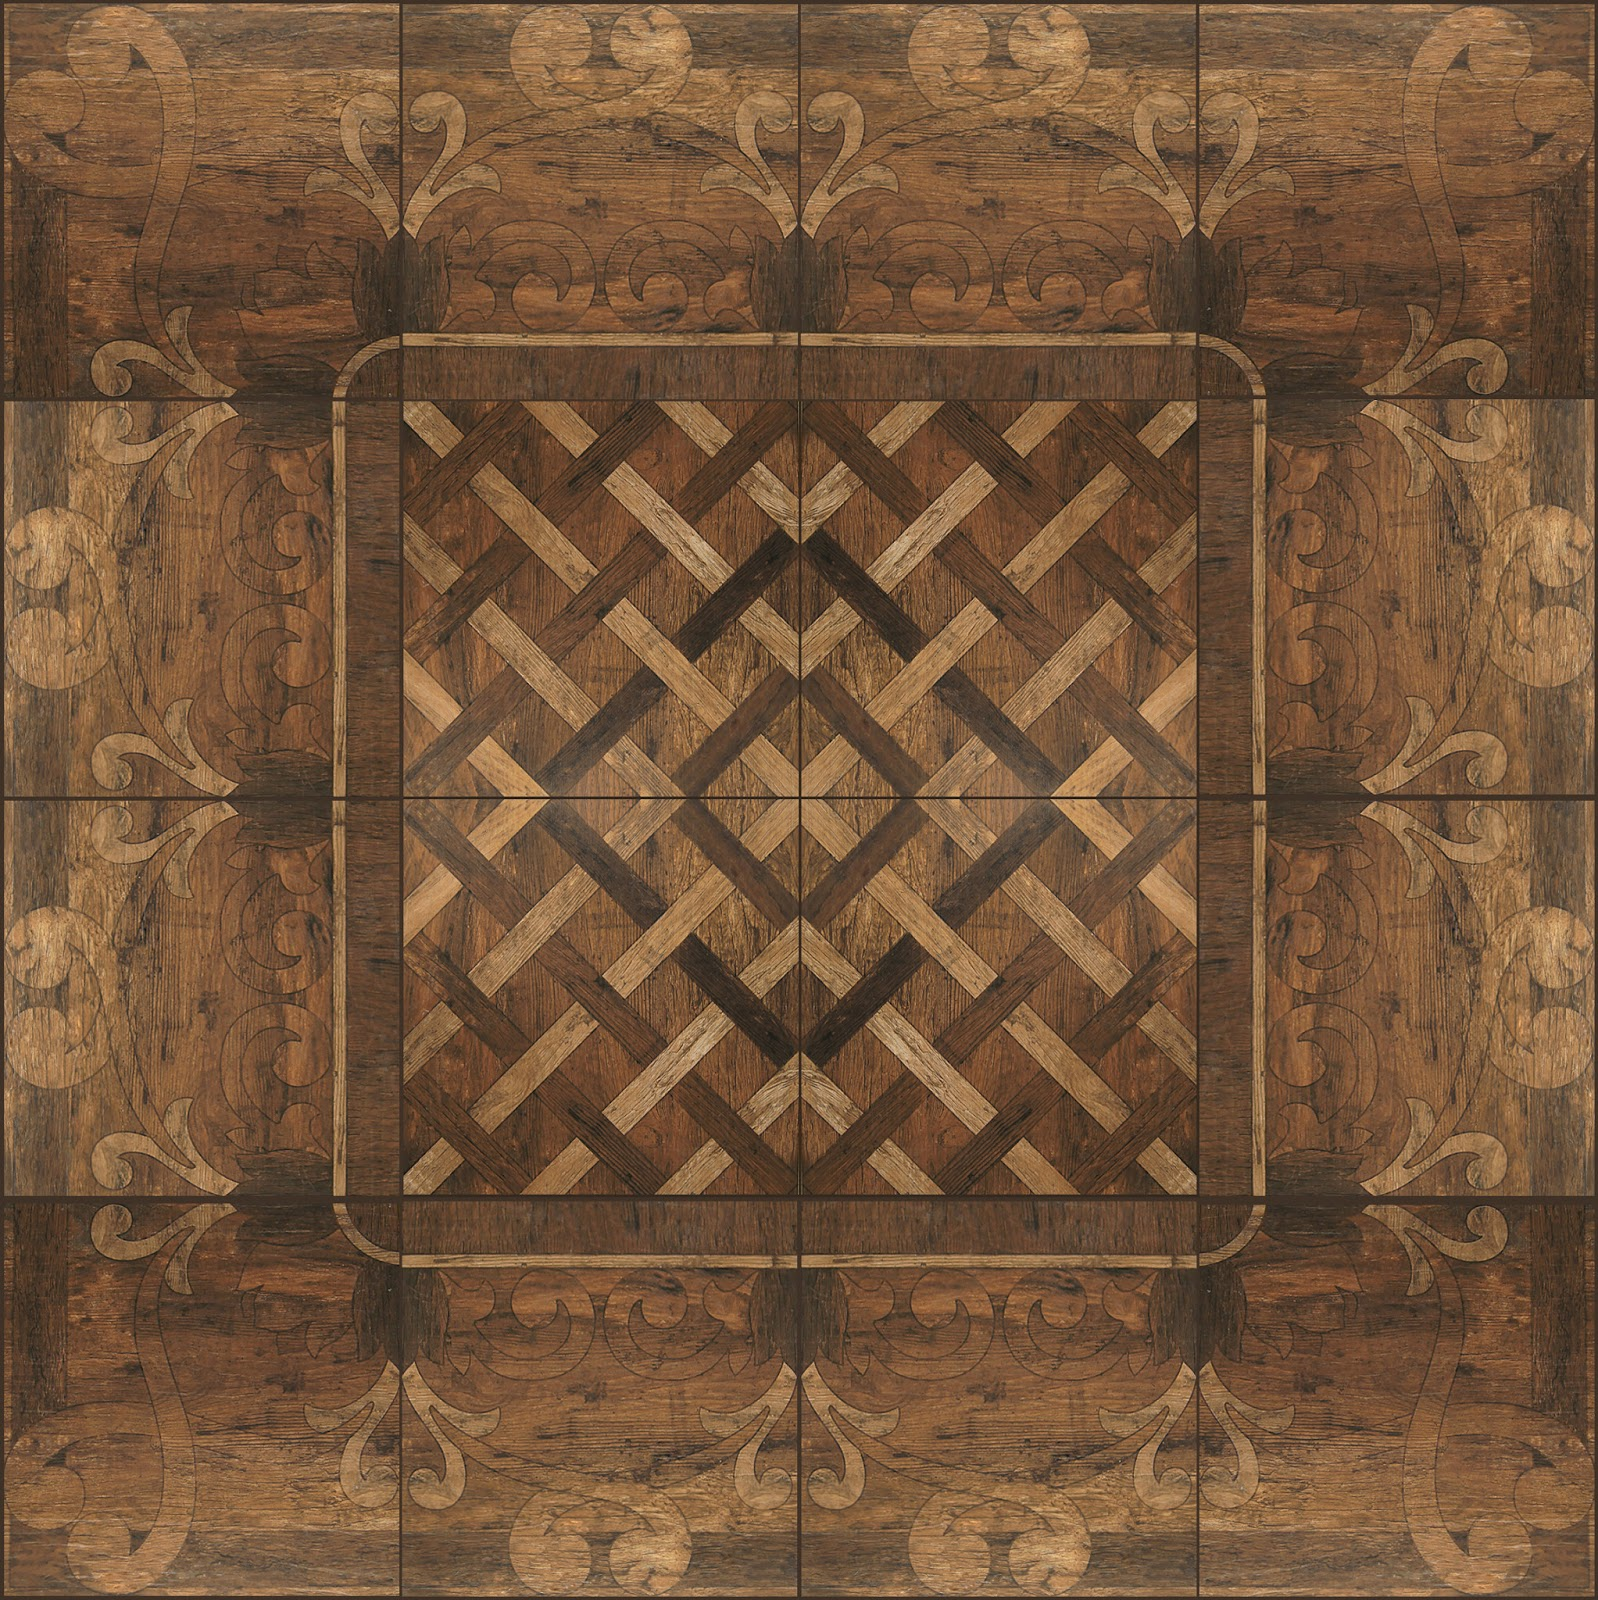 Sketchup texture march 2013 Wood pattern tile